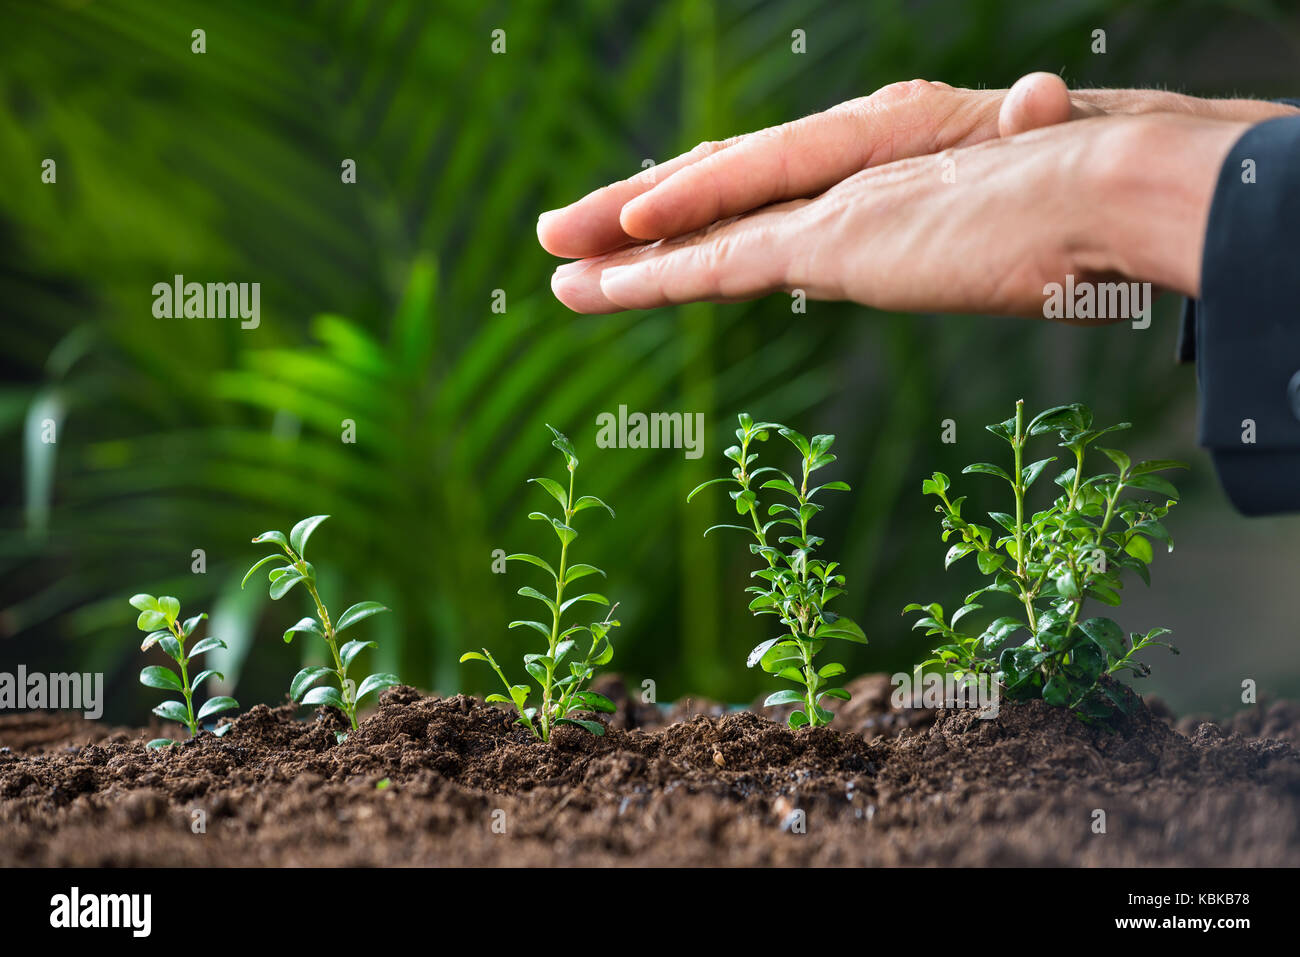 Closeup of businessman's hands protecting plants growing on land Stock Photo